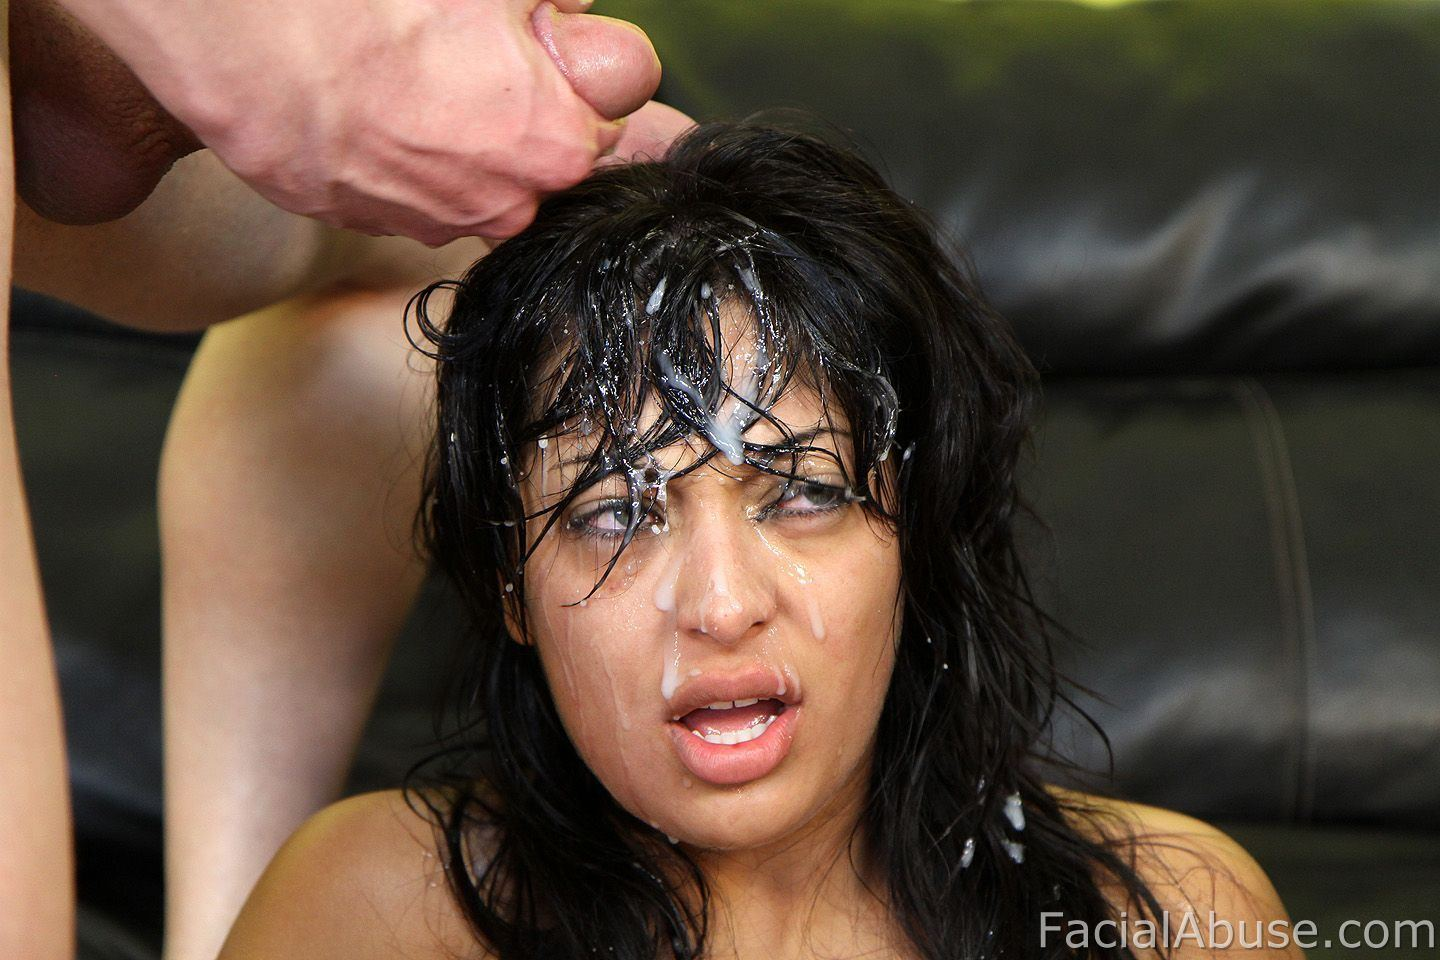 Abused Movies Porn Video facial abuse sex - xxx pics.